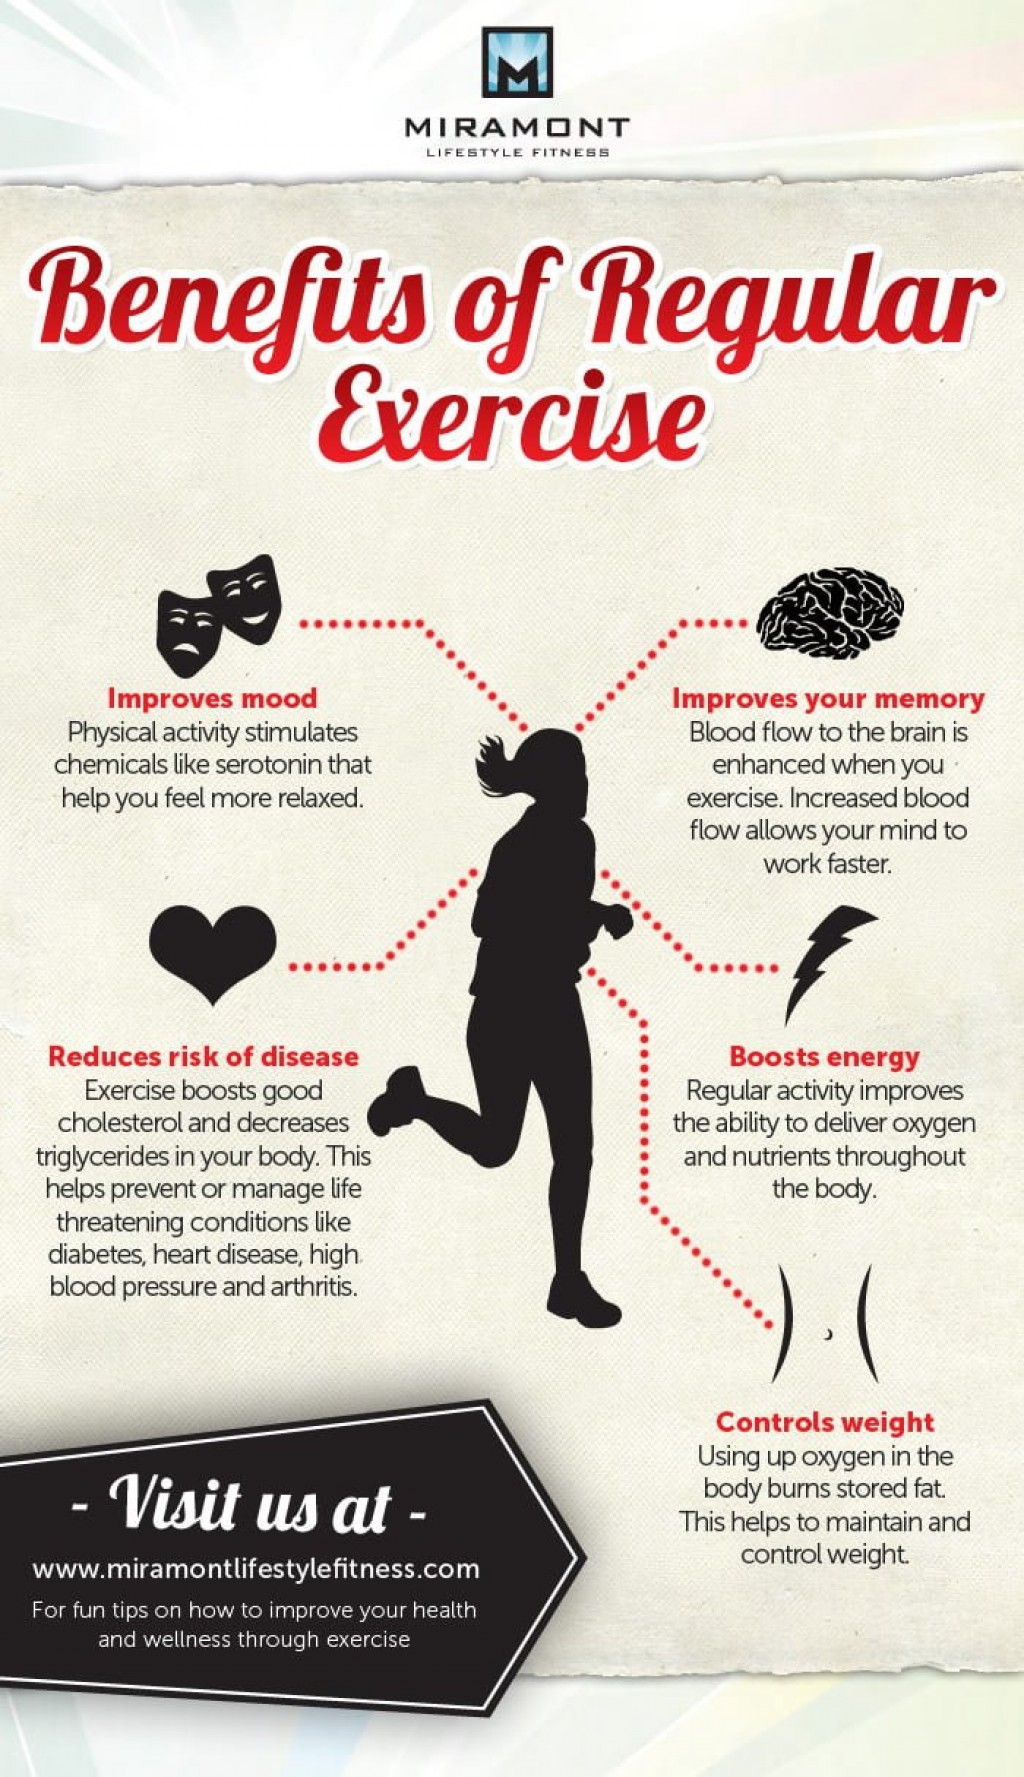 016 Benefits Of Regular Exercise Infographic Essay On Impressive Physical In 200 Words For Class 4 Hindi Large